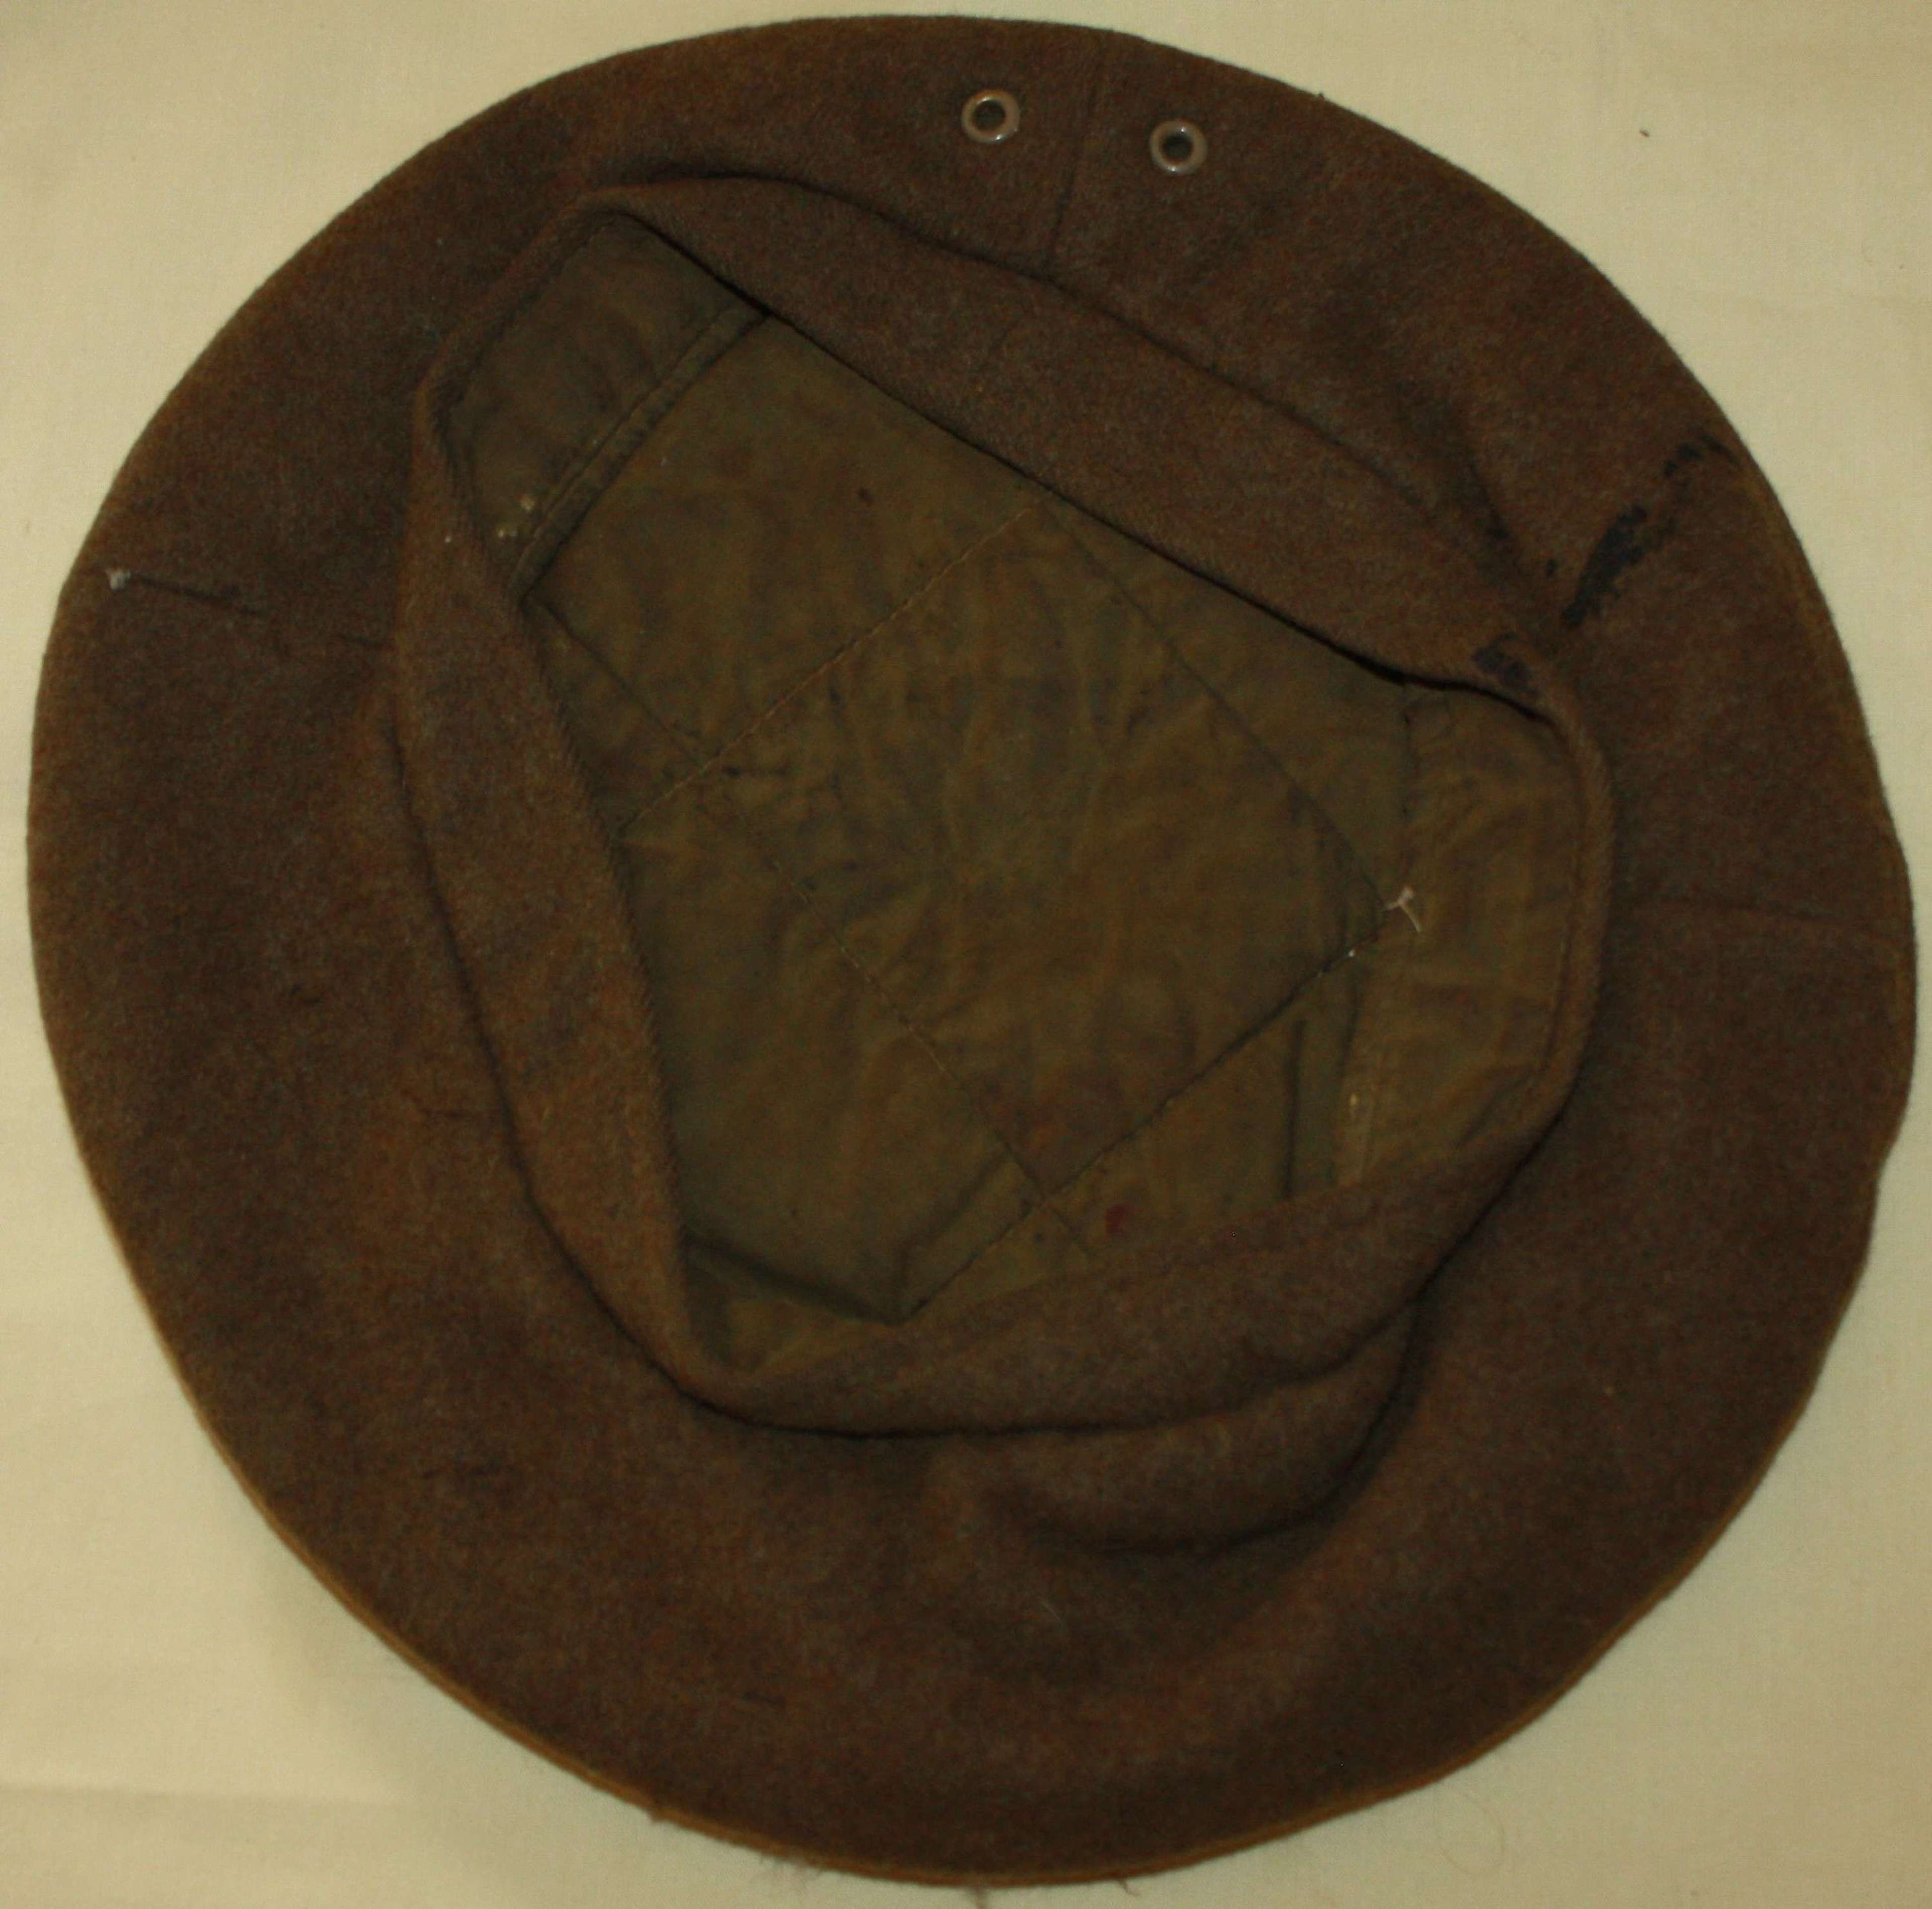 A GOOD USED WWII GS CAP SIZE IS A 6 3/4 APROX